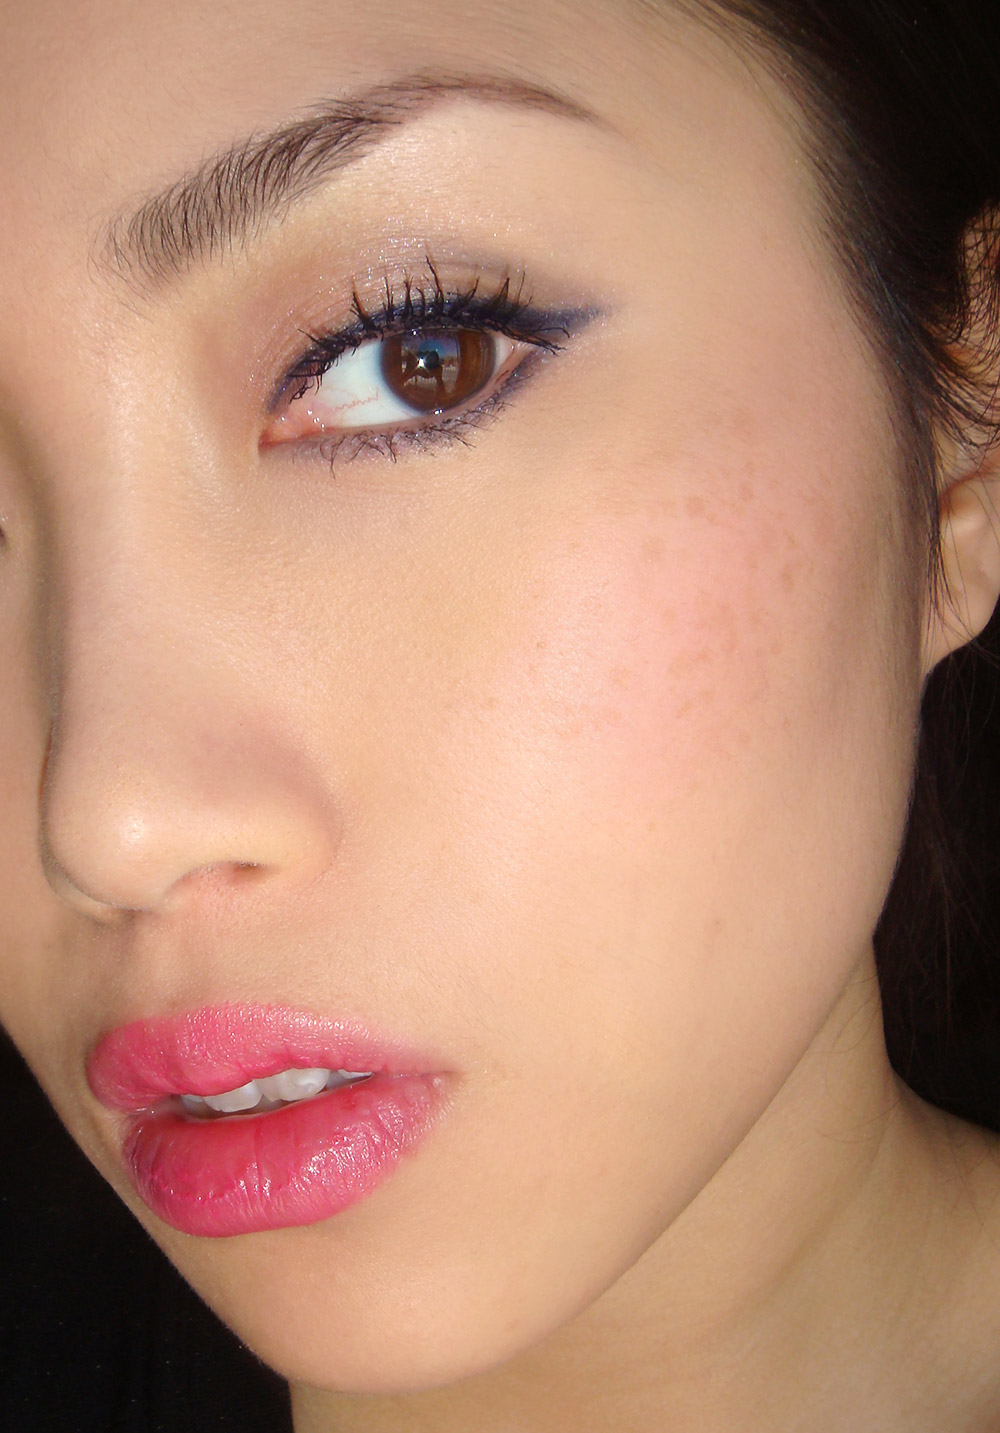 Wearing Pixi Succulent Lip Twin in Pink Peony and Endless Silky Eye Pen in Blue Black